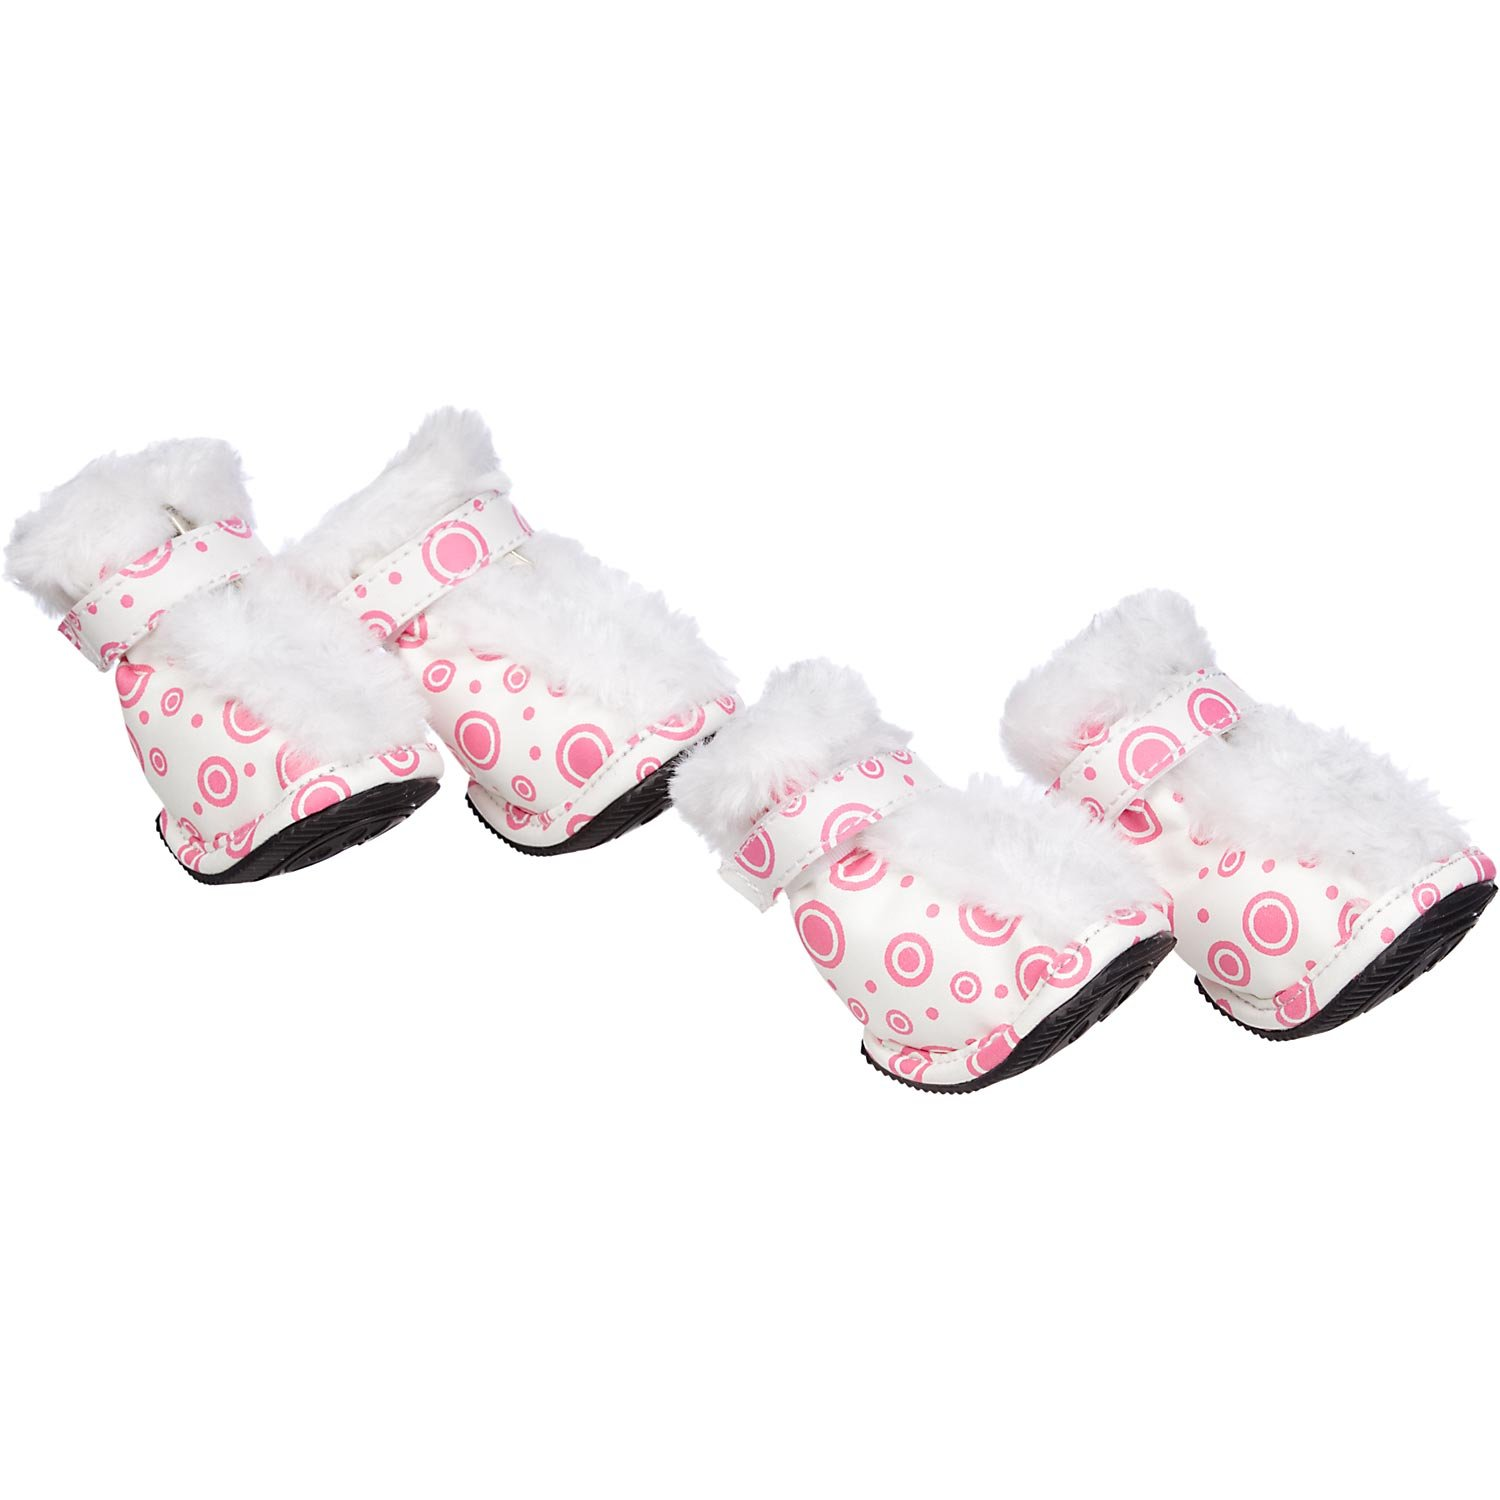 Pet Life Insulated Fashion Designer Plush Premium Fur-Comfort PVC Water resistant Supportive Pet Dog Shoes Booties Boots, Large, Pink & White